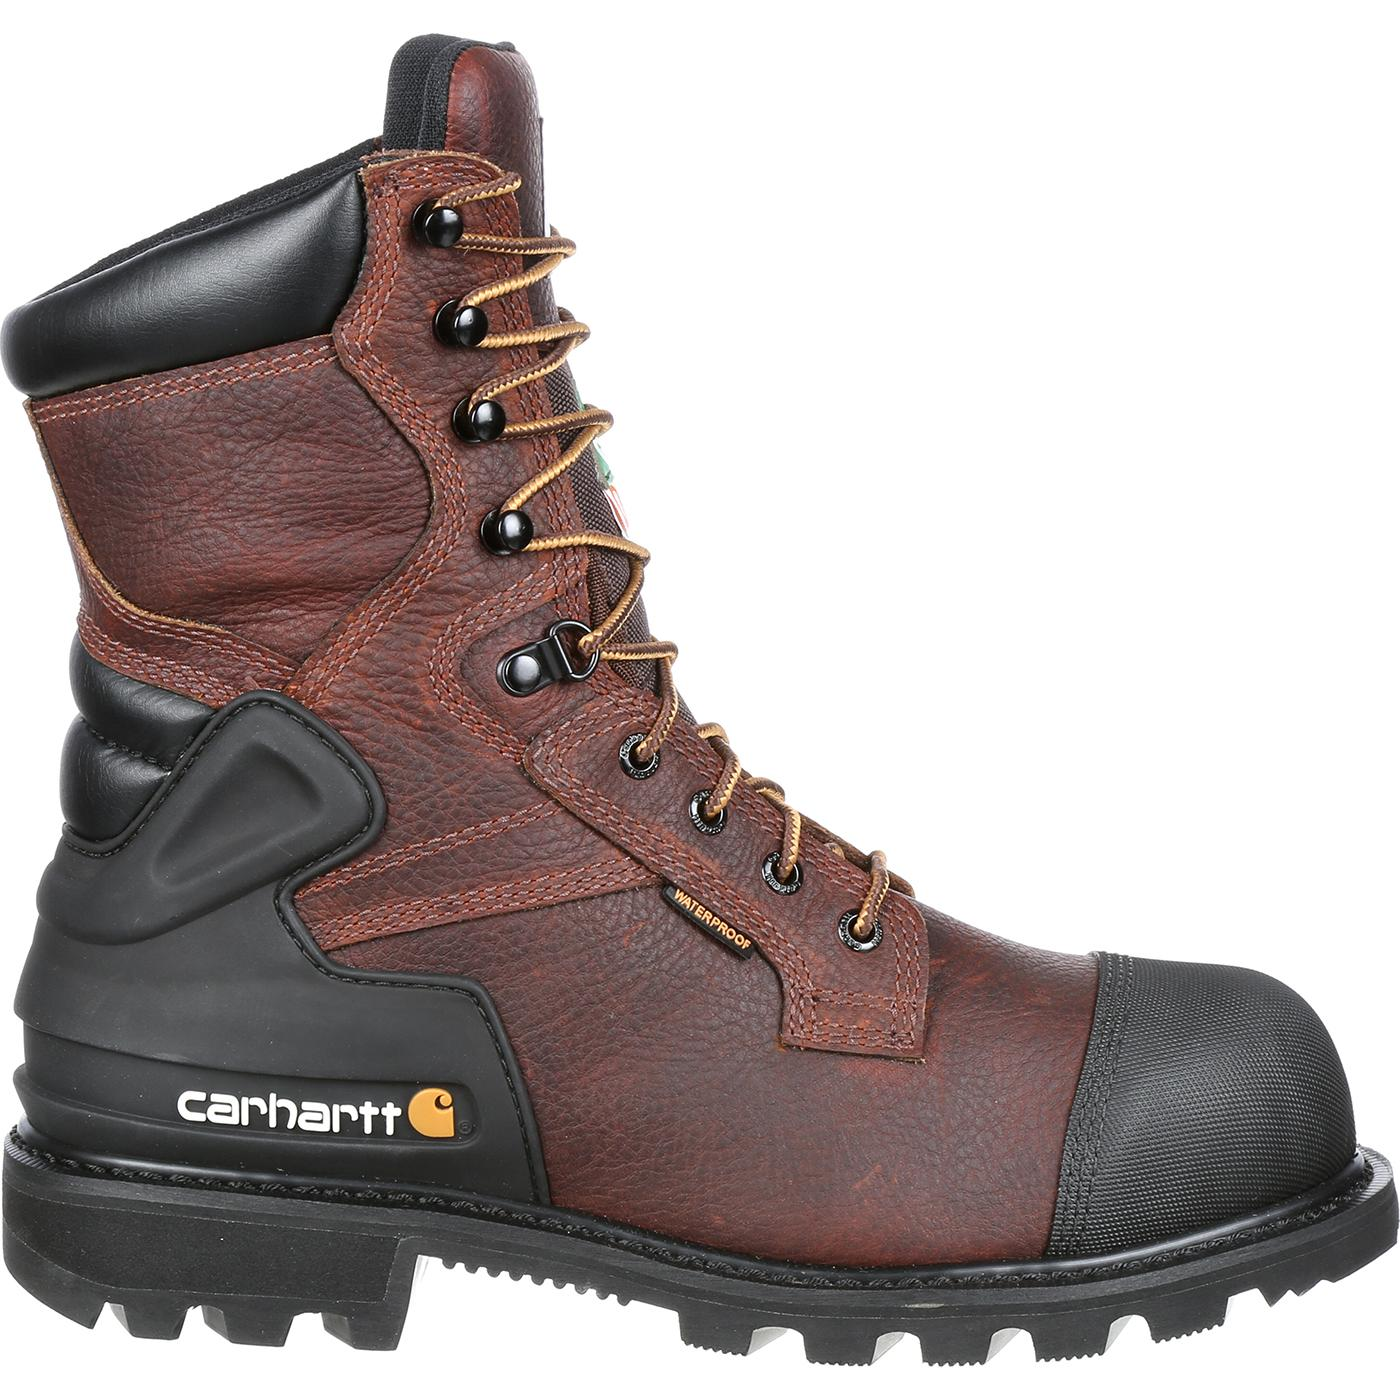 Carhartt Steel Toe Csa Approved Puncture Resistant Work